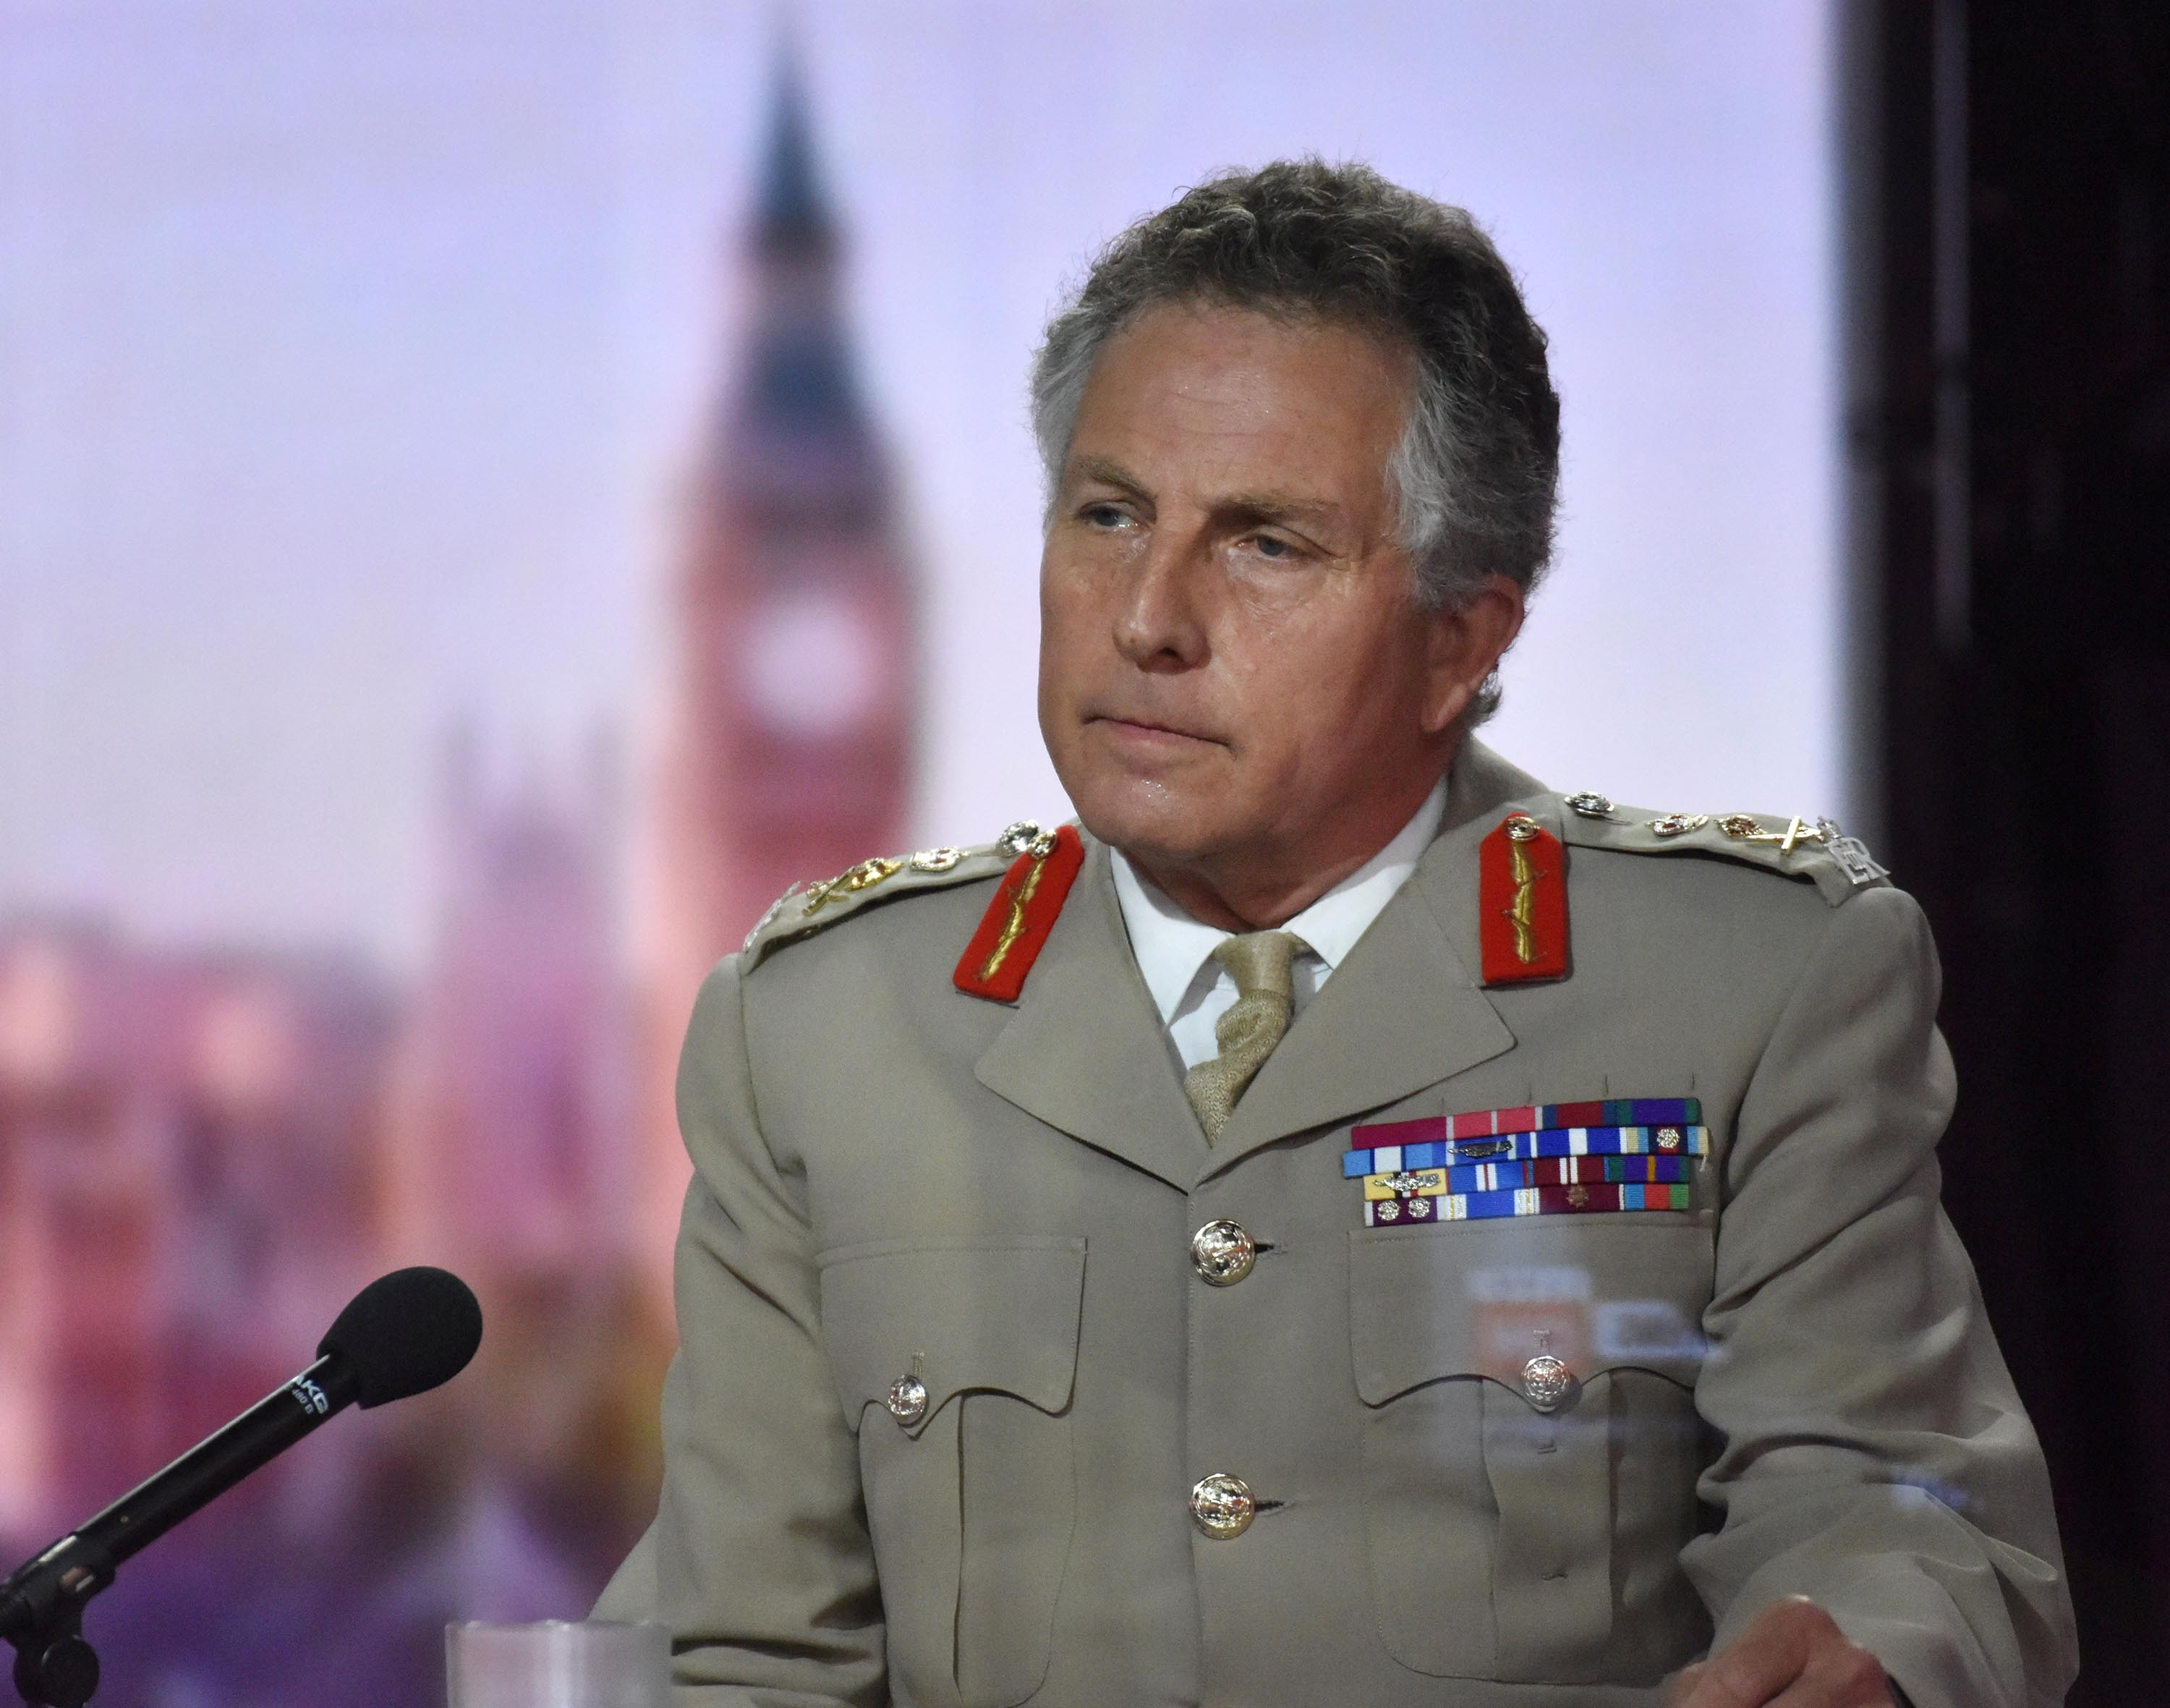 British Army General Sir Nick Carter appears on BBC TV's The Andrew Marr Show in London, Britain, July 11, 2021. Jeff Overs/BBC/Handout via REUTERS/Files